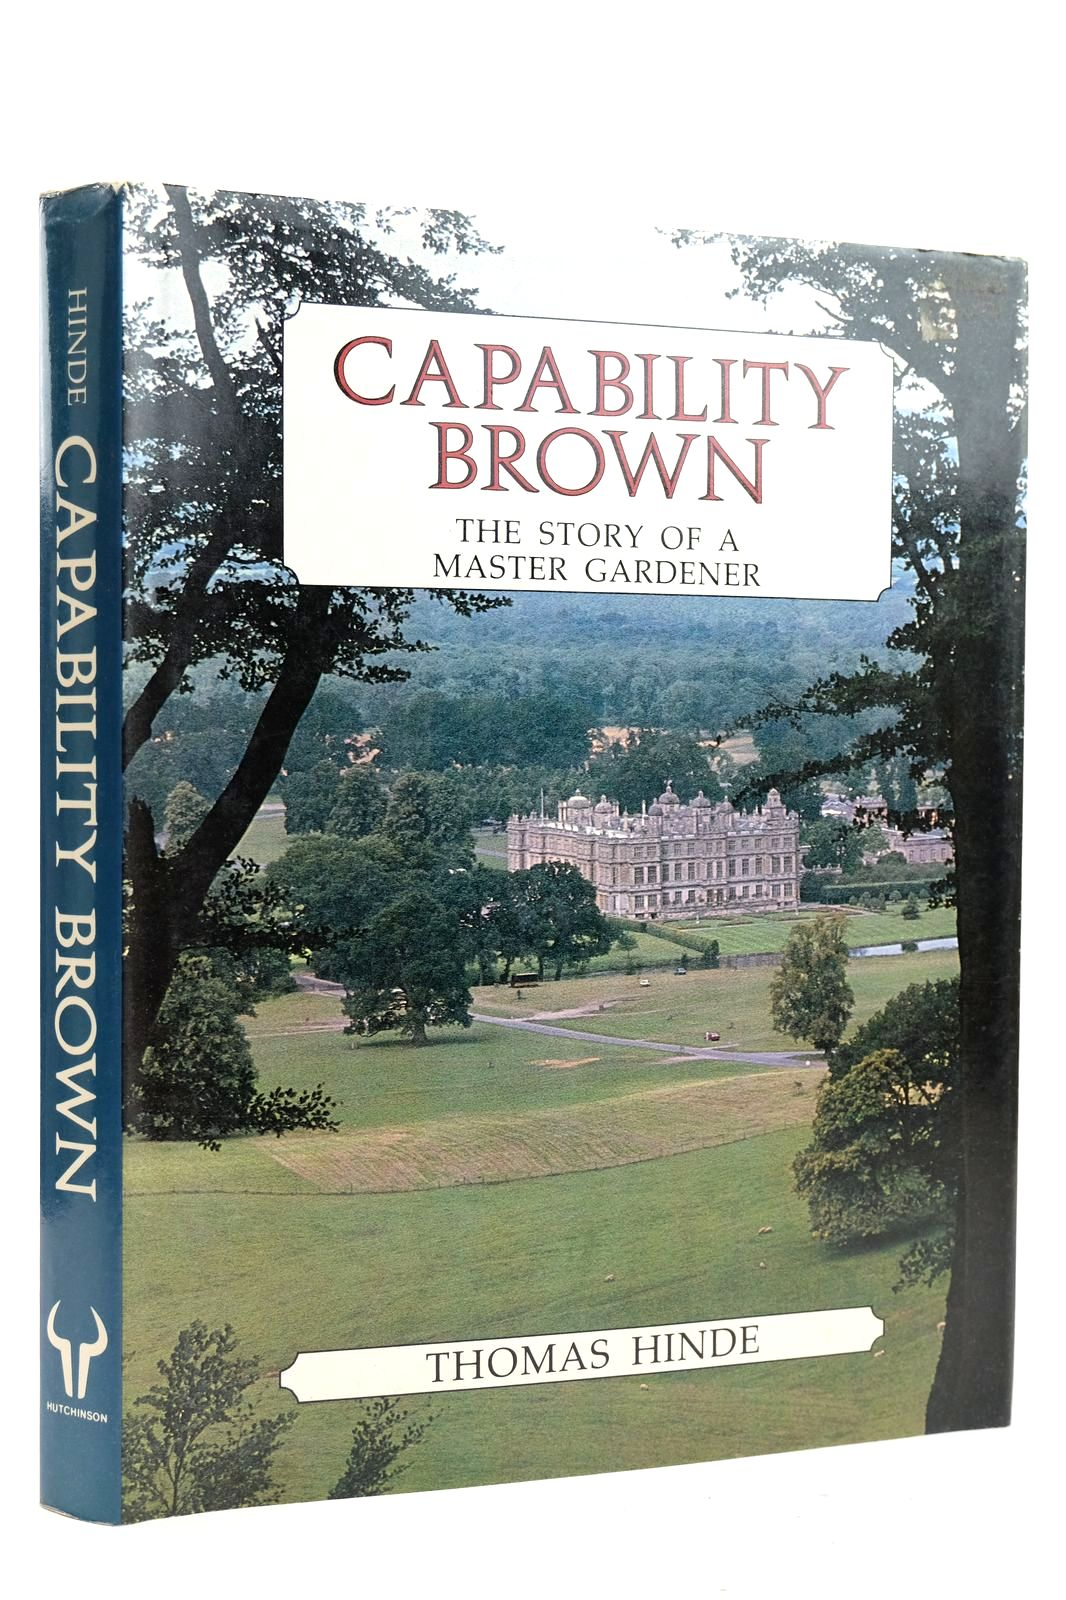 Photo of CAPABILITY BROWN THE STORY OF A MASTER GARDENER written by Hinde, Thomas published by Hutchinson (STOCK CODE: 2132663)  for sale by Stella & Rose's Books